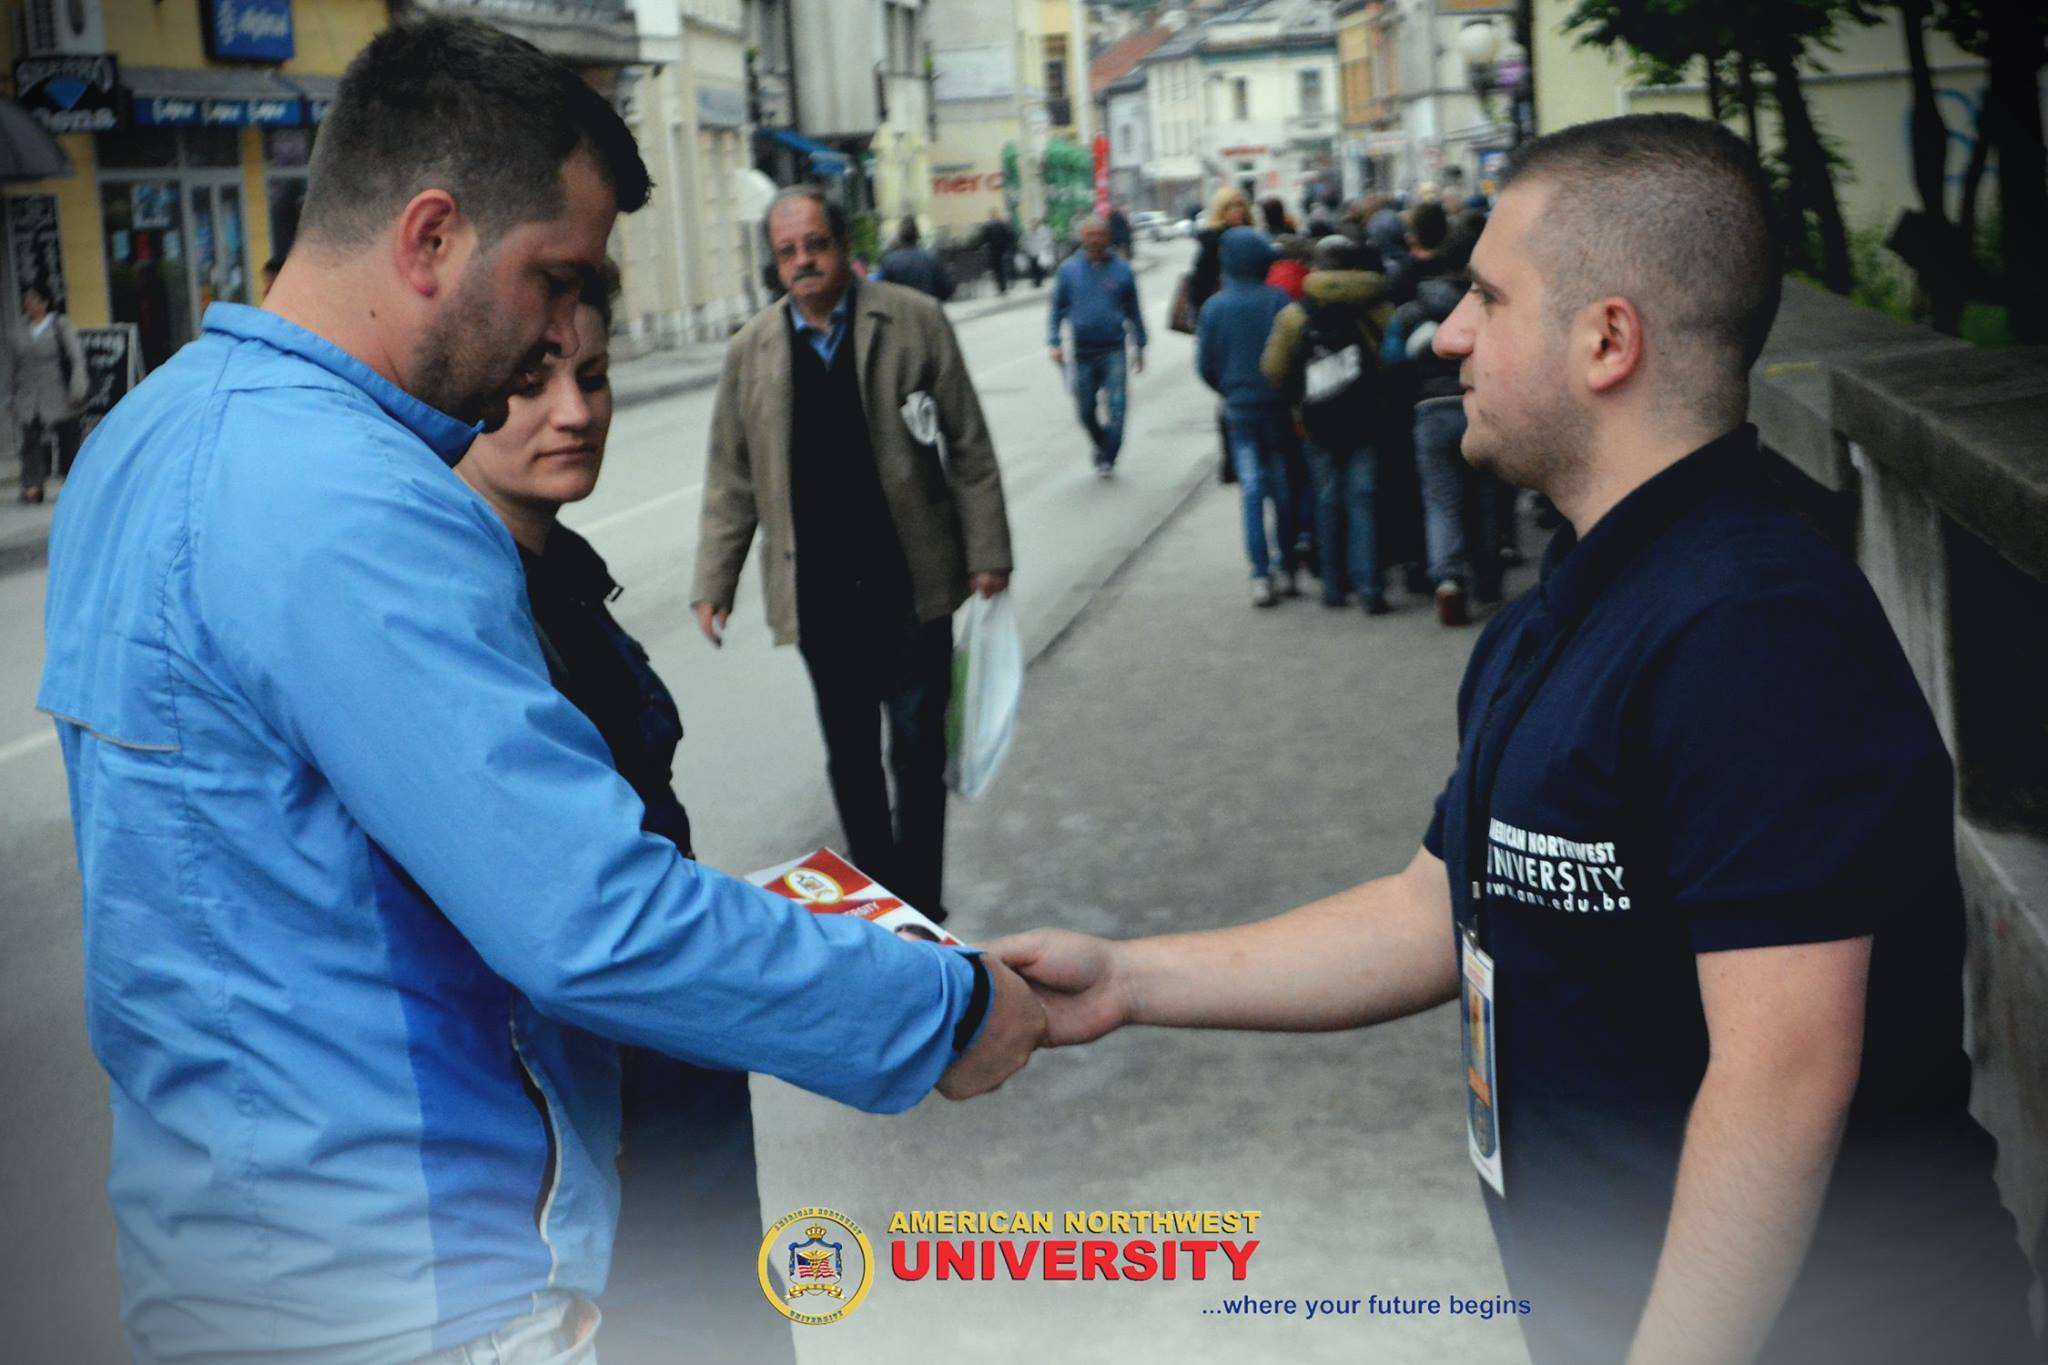 Distribution of Leaflets